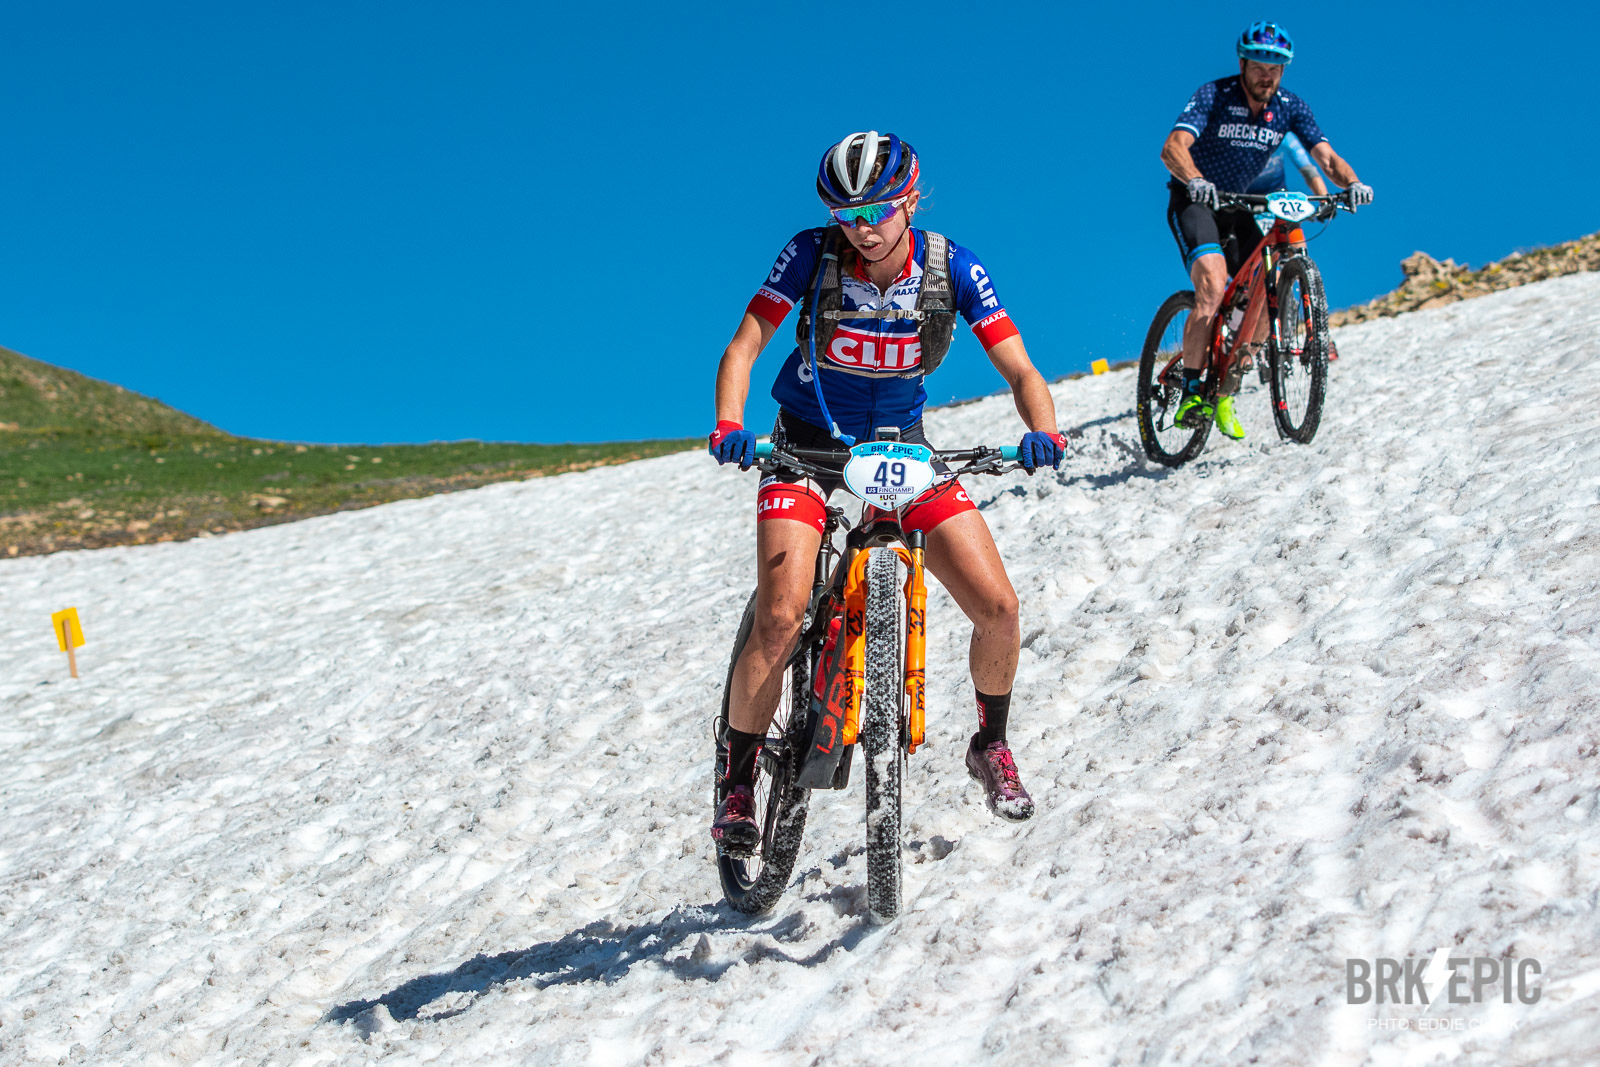 Stage 3 of the Breck Epic featured 7000+ of climbing in addition to a snow field. No wonder it's the Queen stage. 